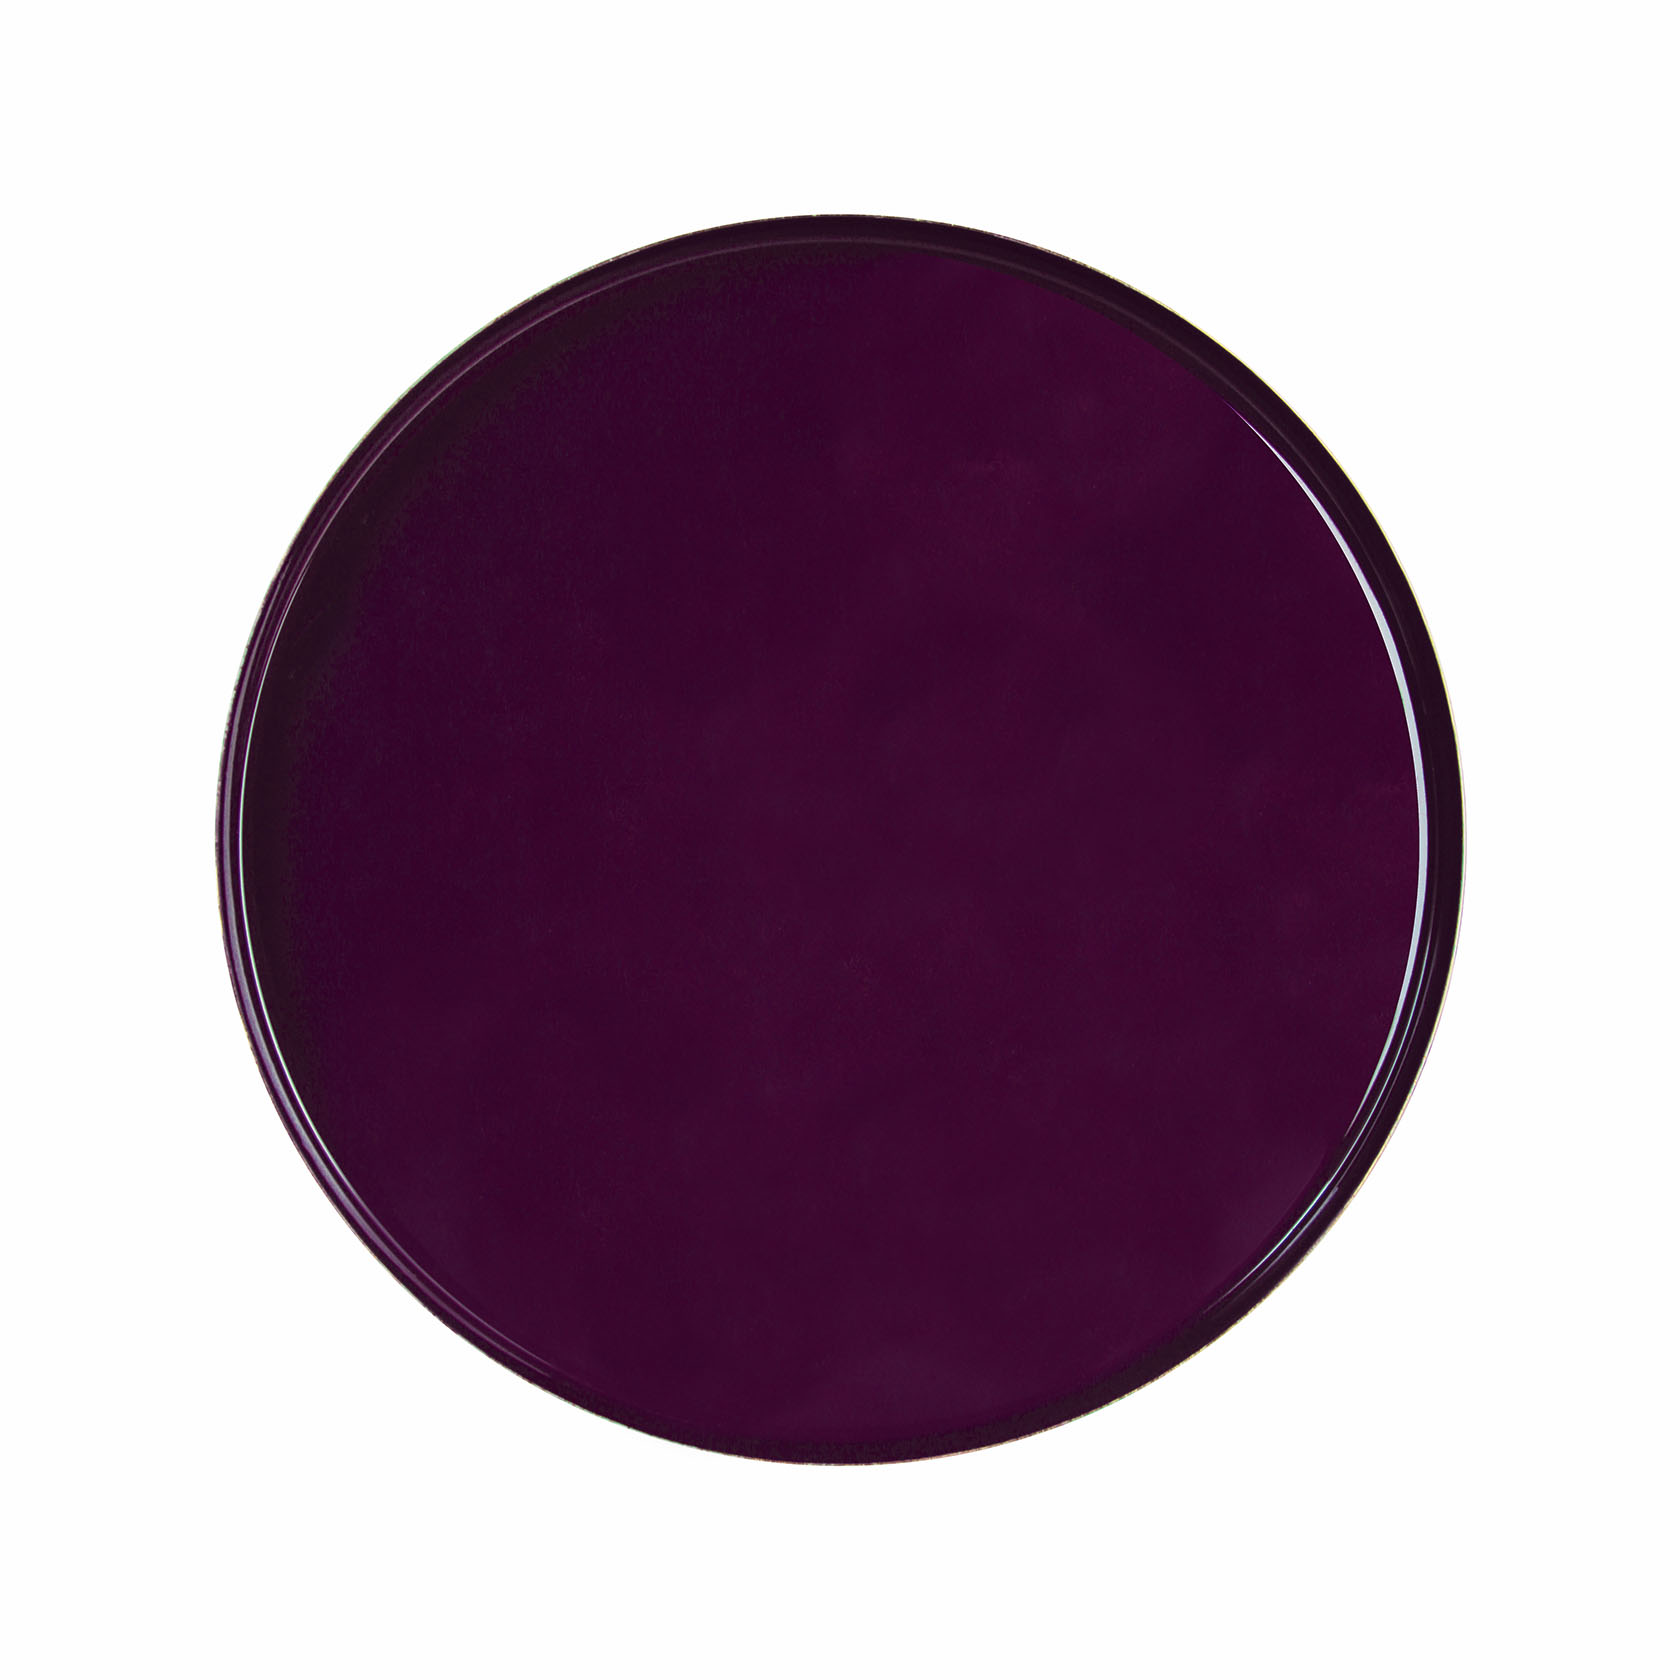 &k tray round metal purple 36cm